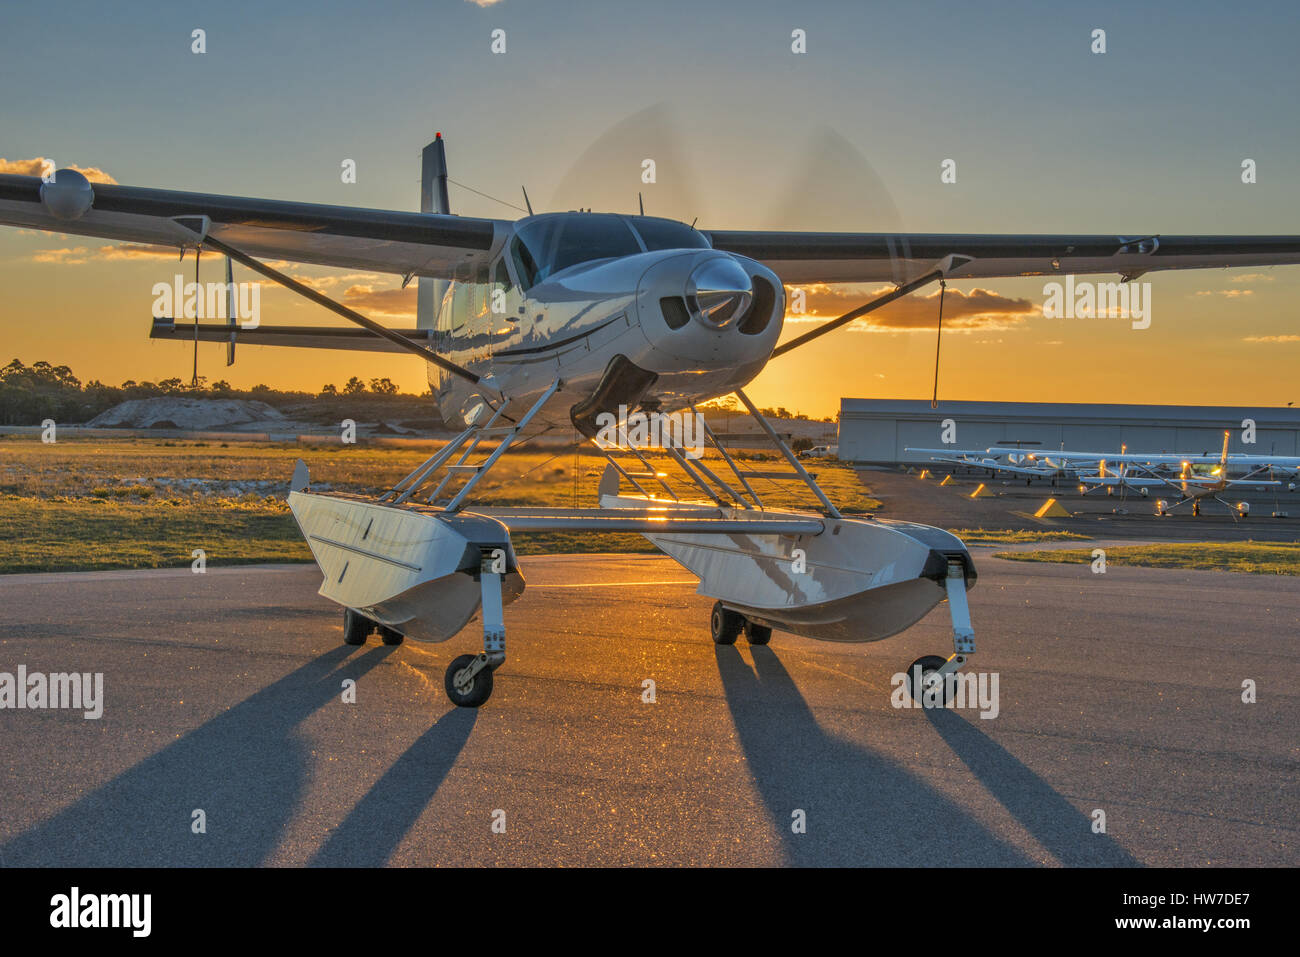 Float equipped Cessna 208 Caravan aircraft with engine running, backlit by the setting sun - Stock Image